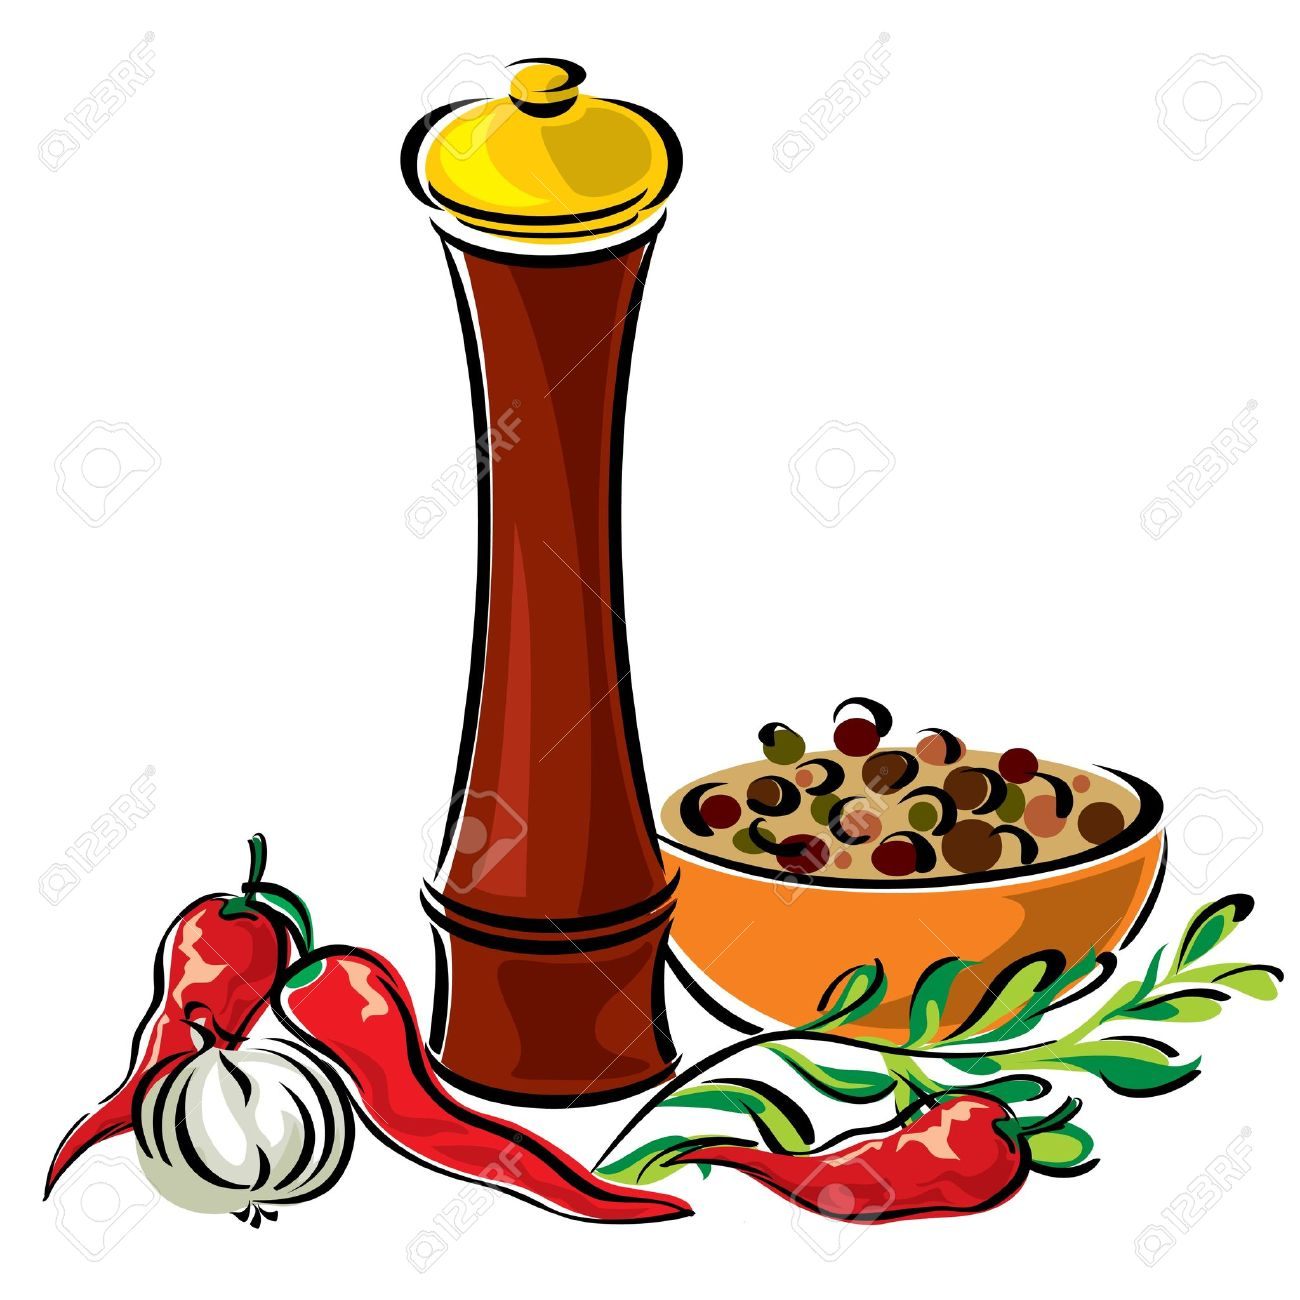 Vector Images Mills For Spices And Seasonings Royalty Free.